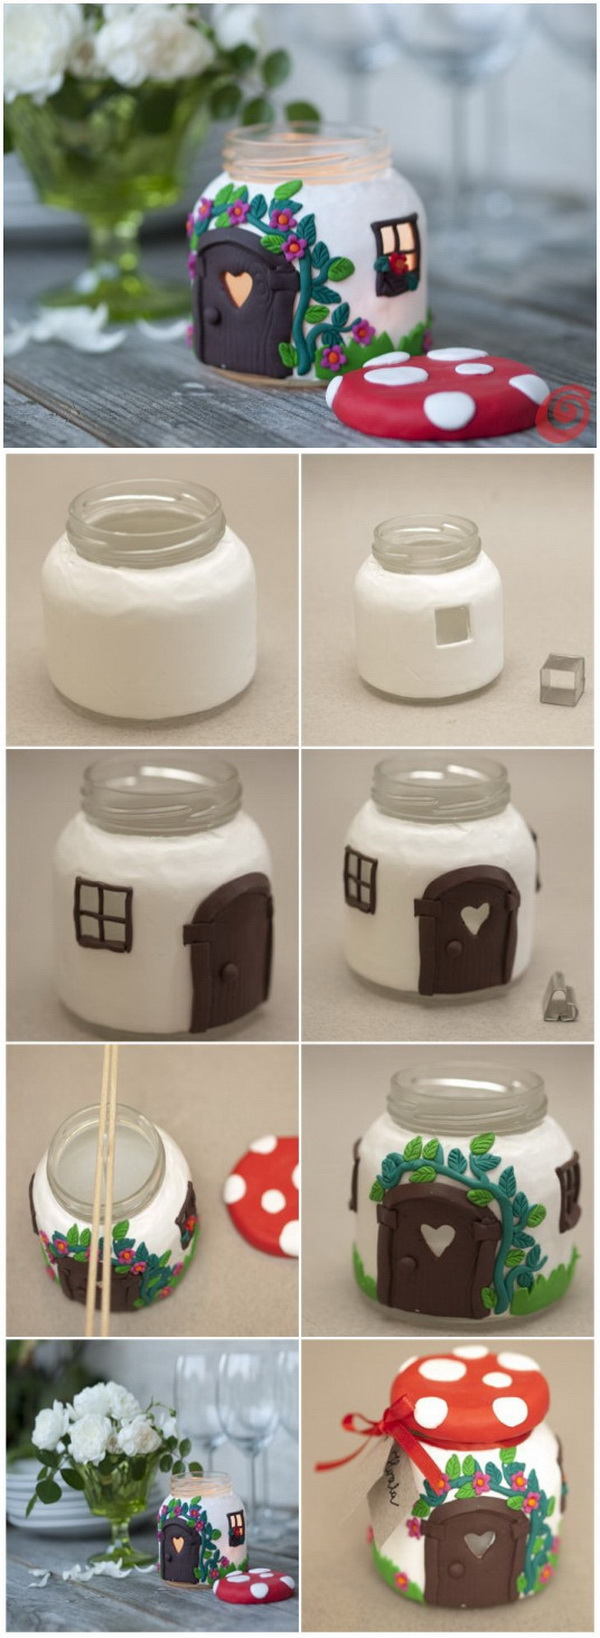 Easy Kids Craft Ideas: DIY Jar Mushroom House.